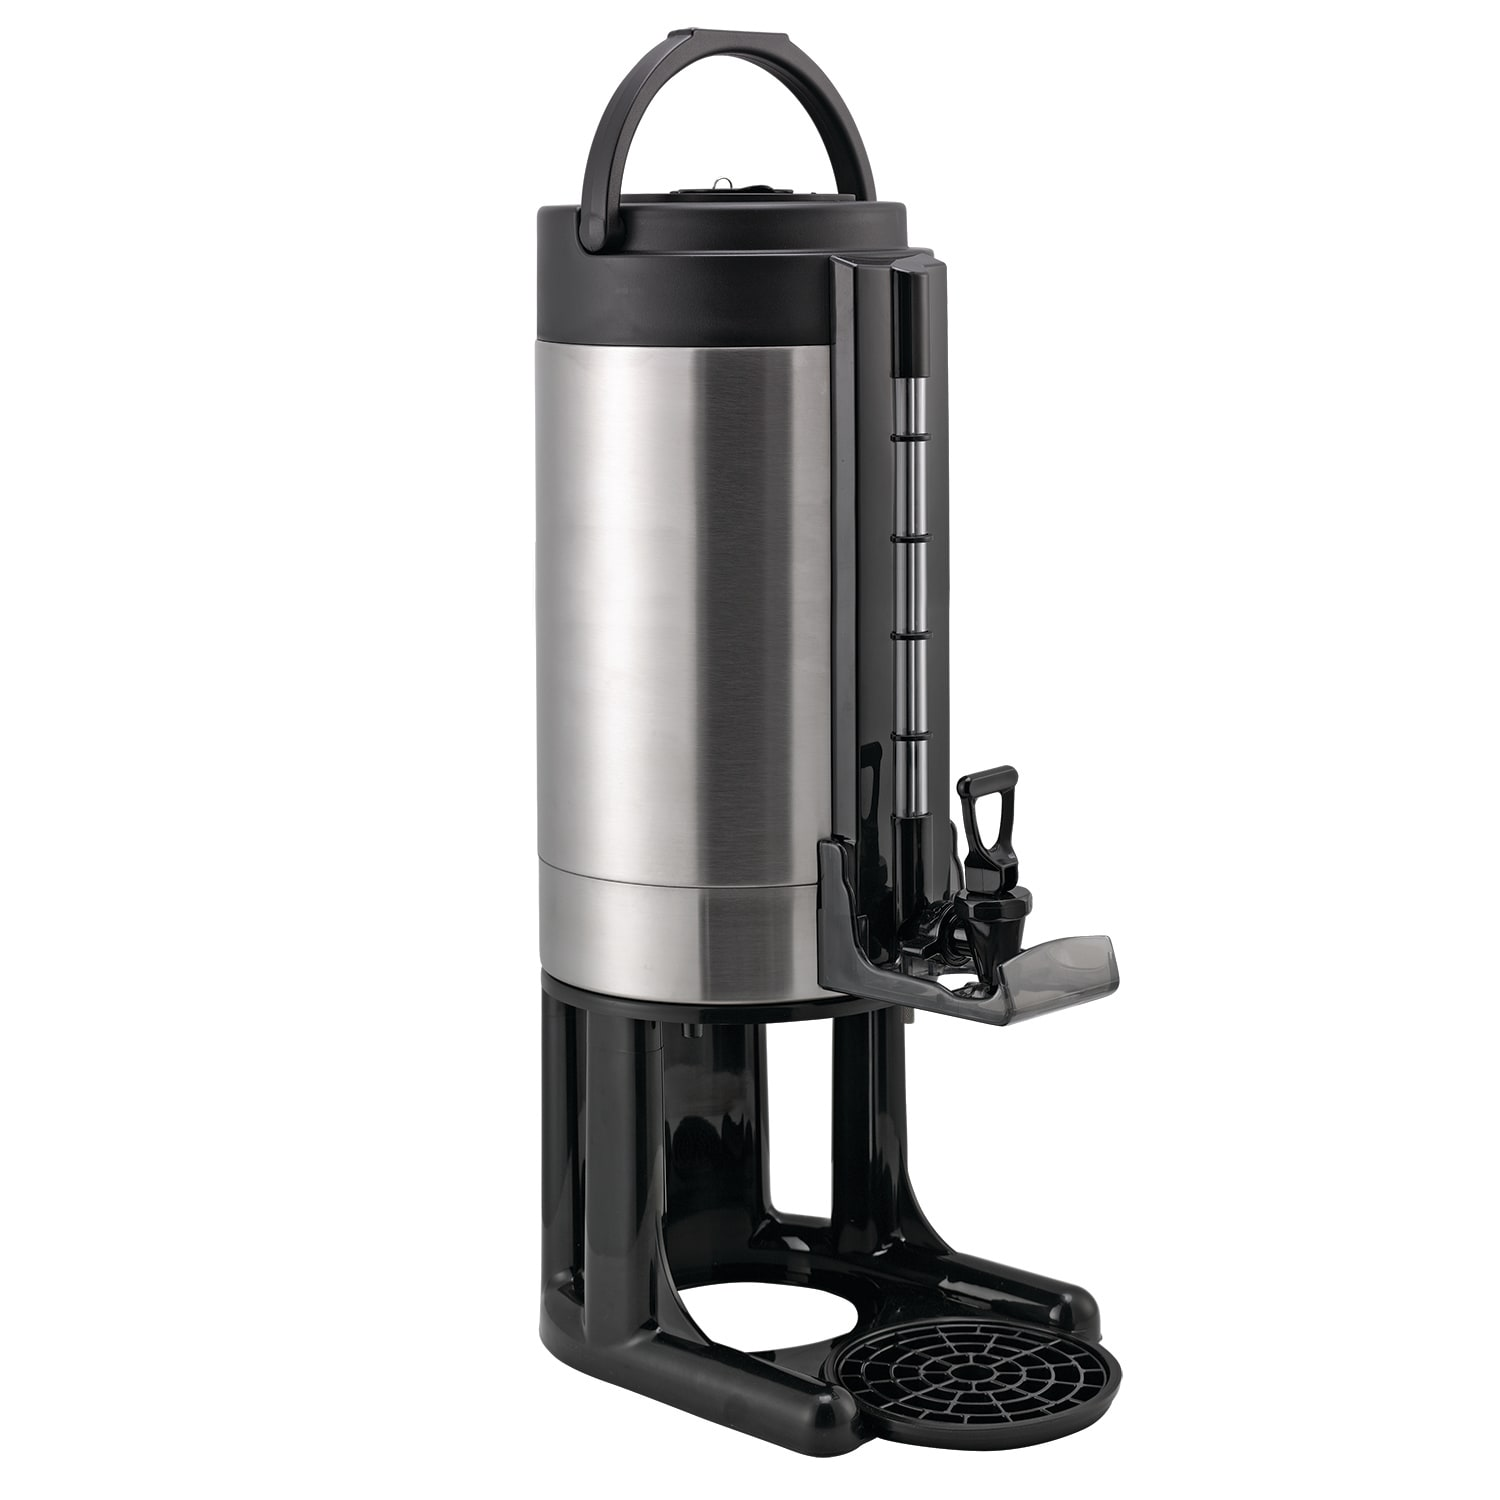 Service Ideas GIU2G 2 Gallon Brew-Thru Thermal Container w/ Drip Tray, Stainless